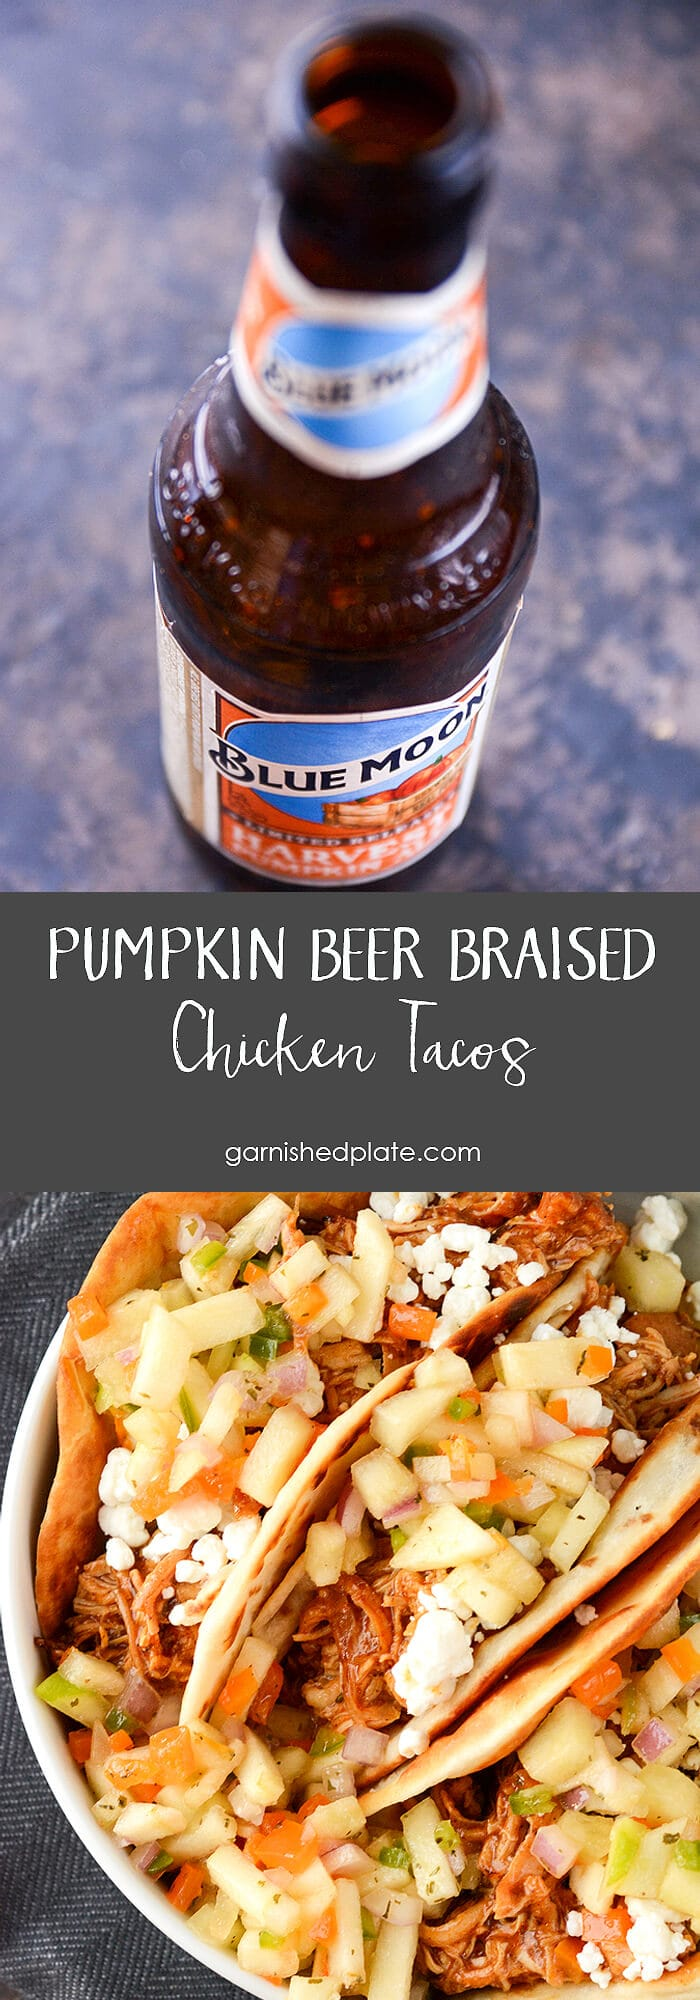 These tacos will blow you away!  Slightly spicy pumpkin beer braised chicken with sweet and tart apple salsa all combined with crispy tortillas and creamy goat cheese for the perfect fall treat!